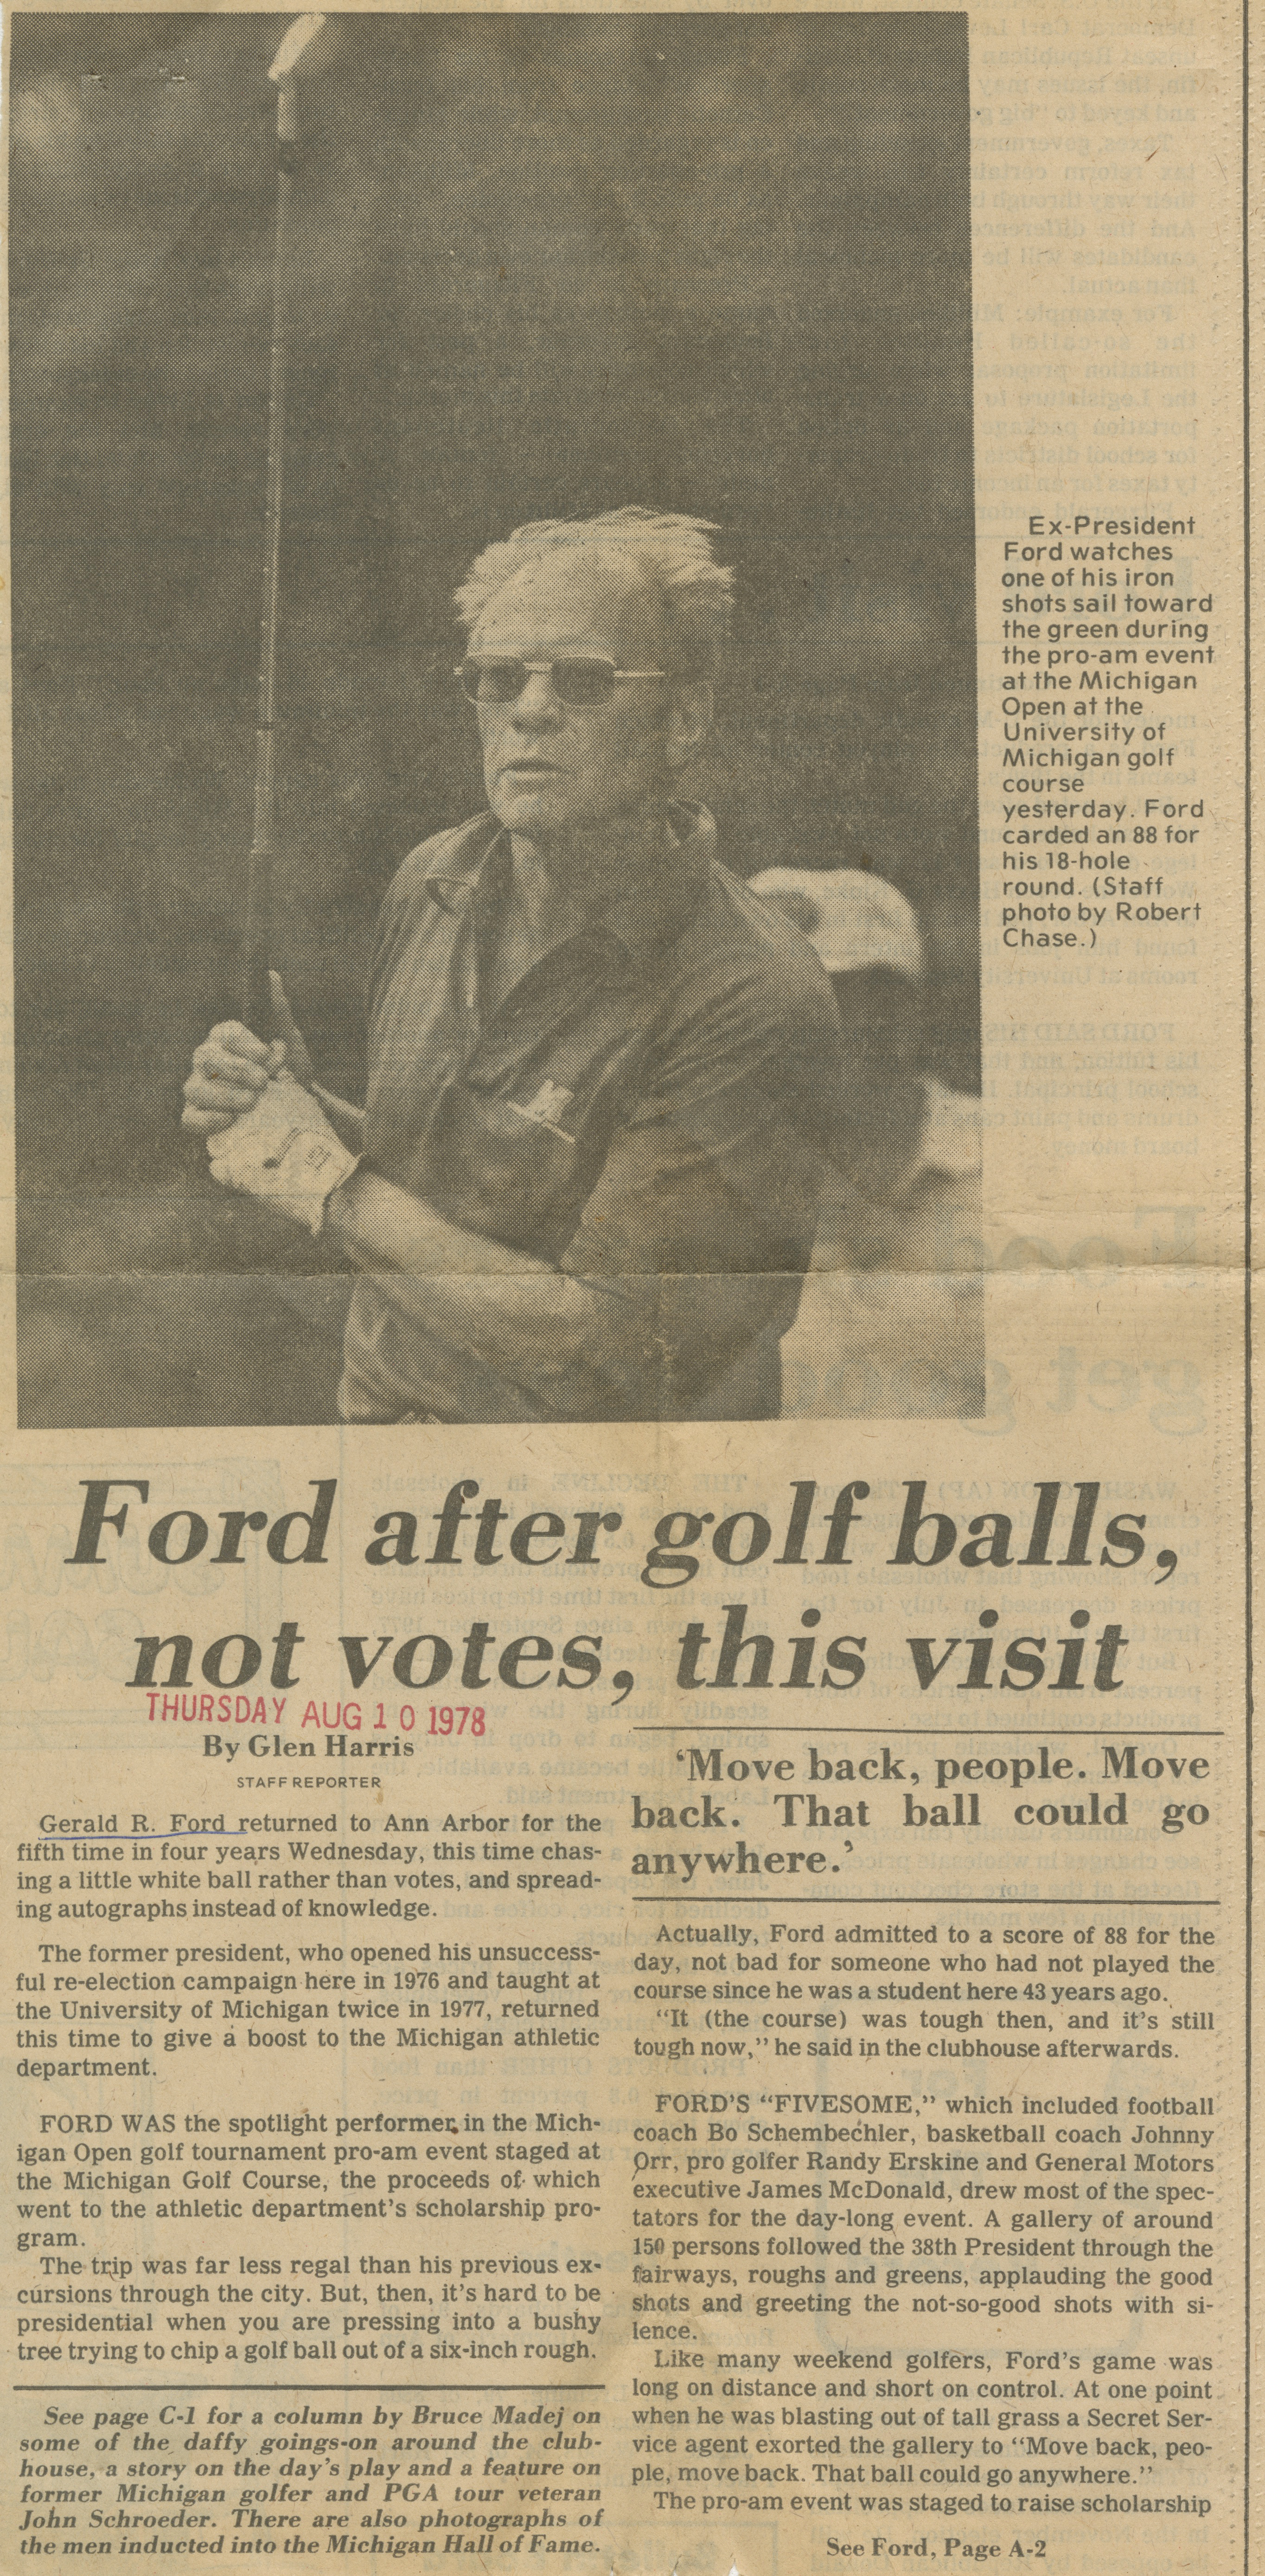 Ford After Golf Balls, Not Votes, This Visit image